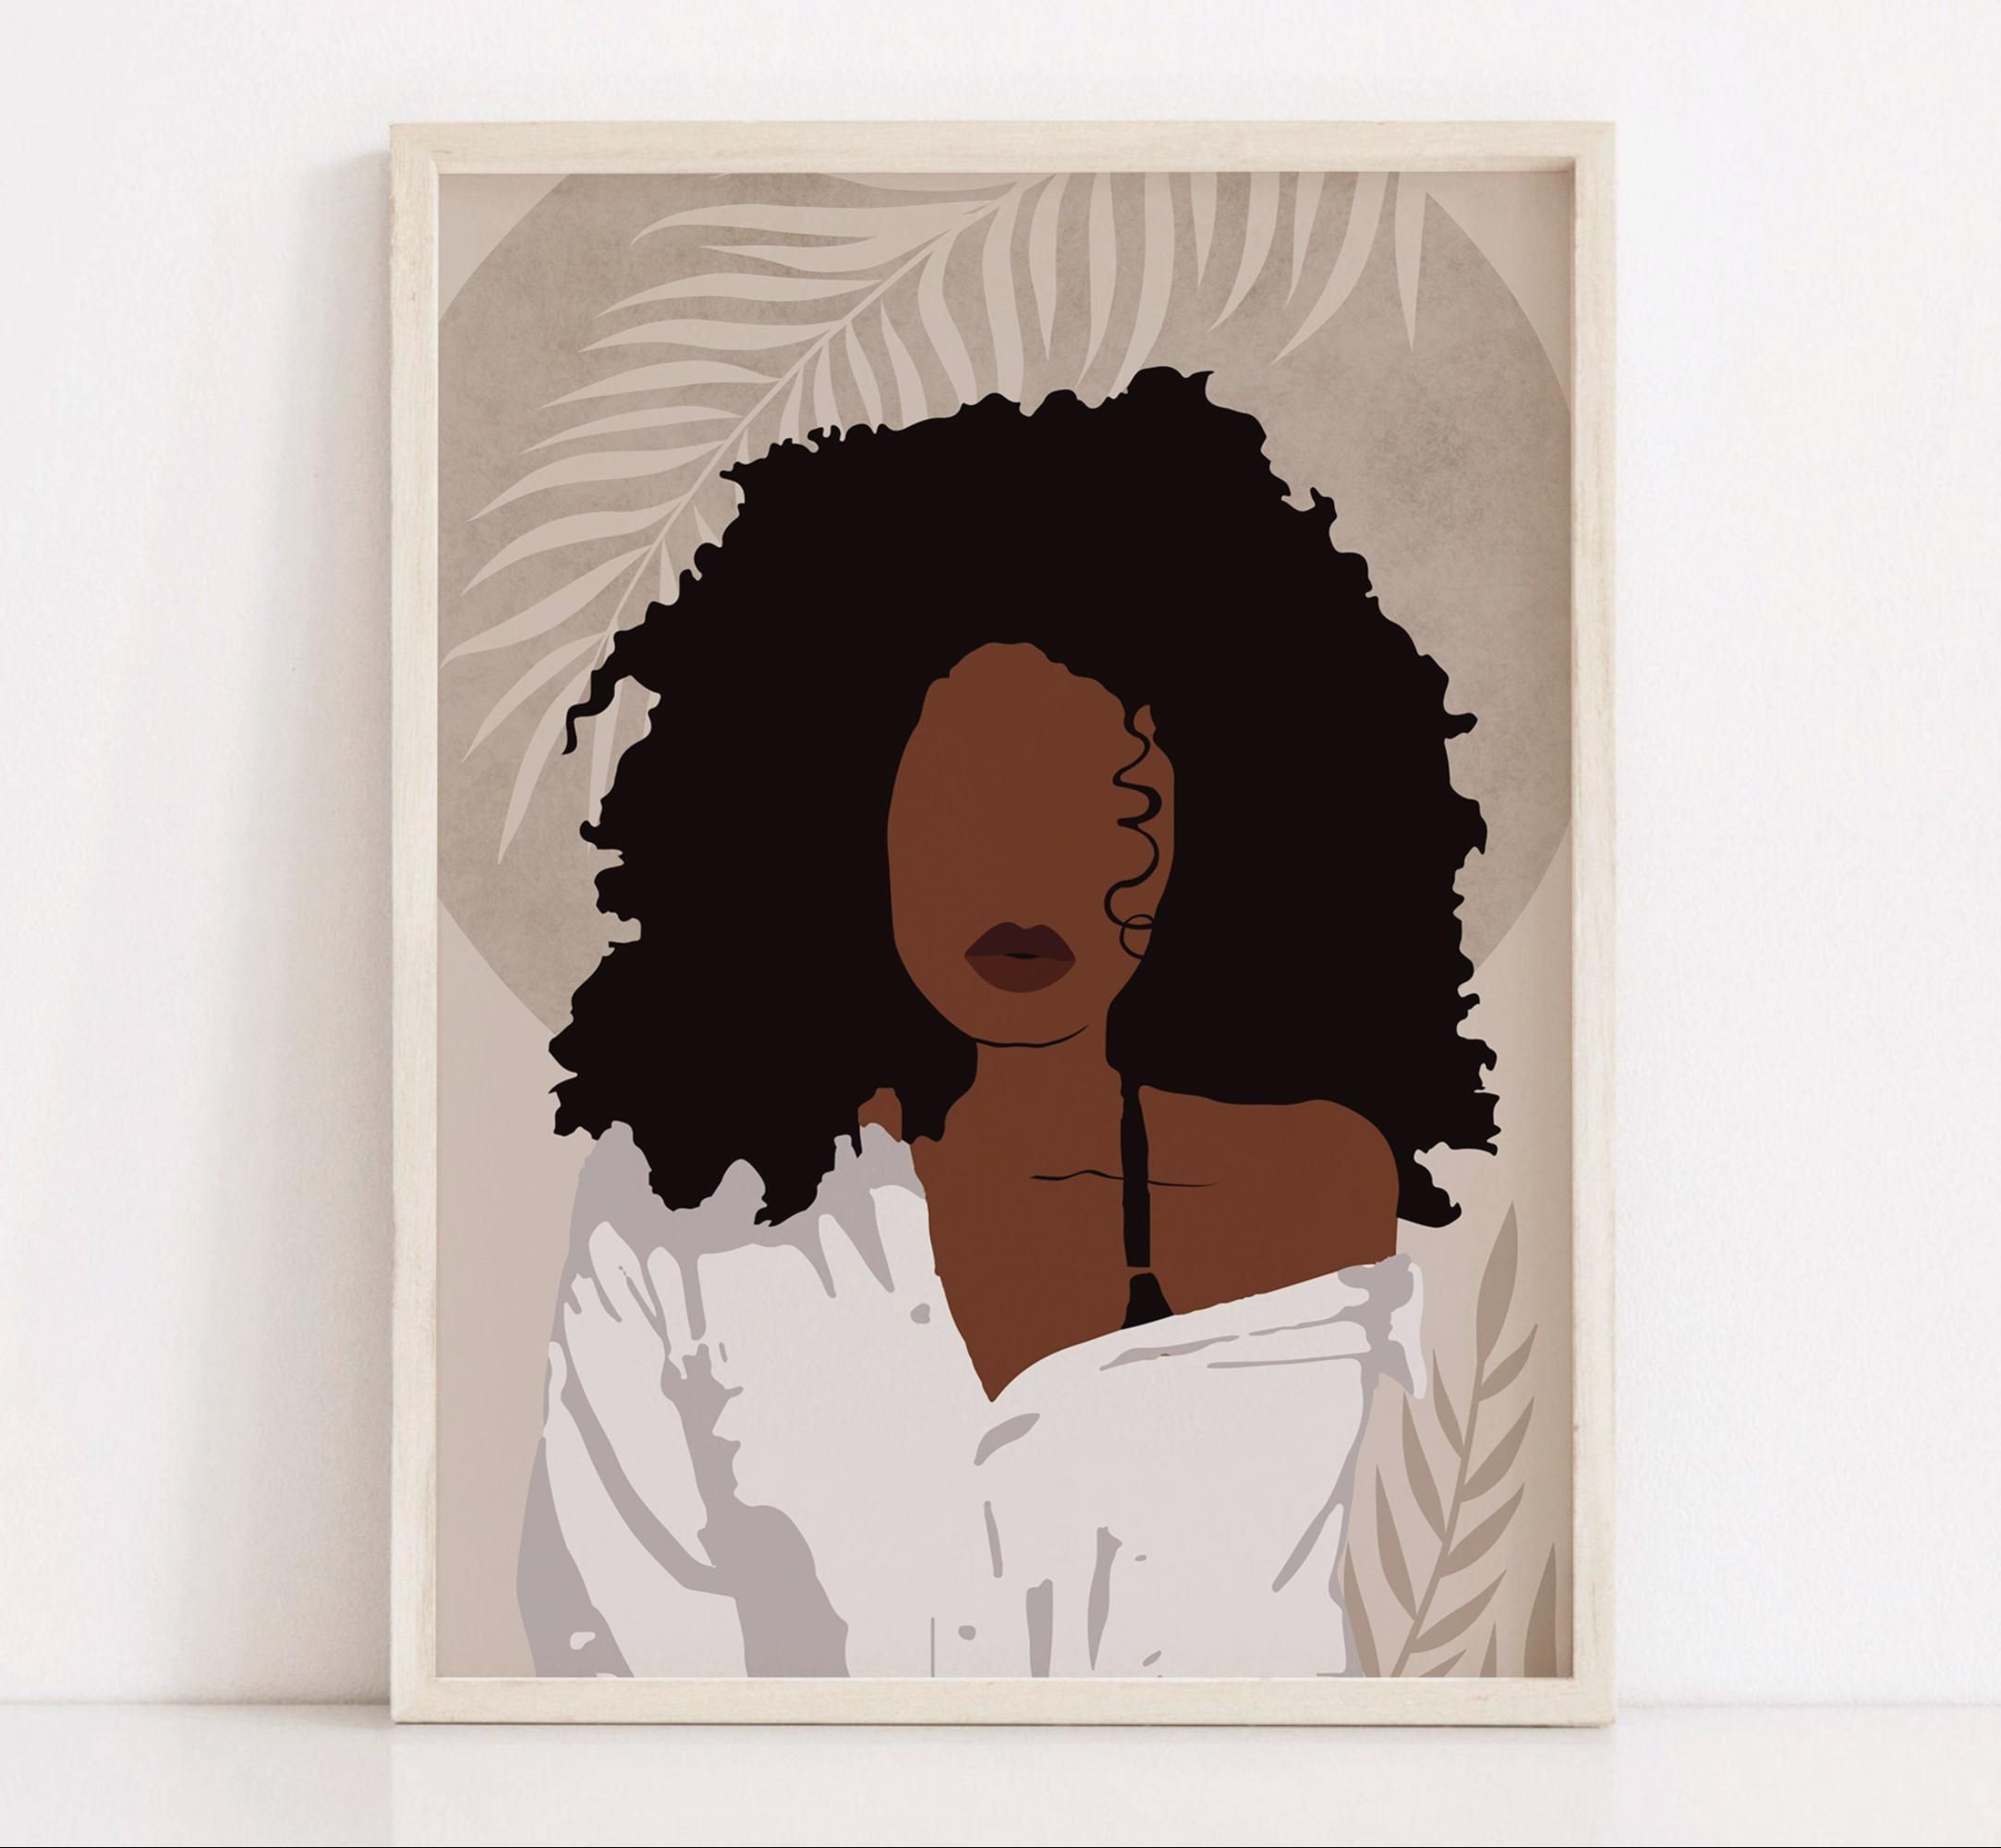 Black Woman Art African Woman Art Instant Download Boho Etsy Video Video In 2021 Black Wall Art Afrocentric Art African Women Art